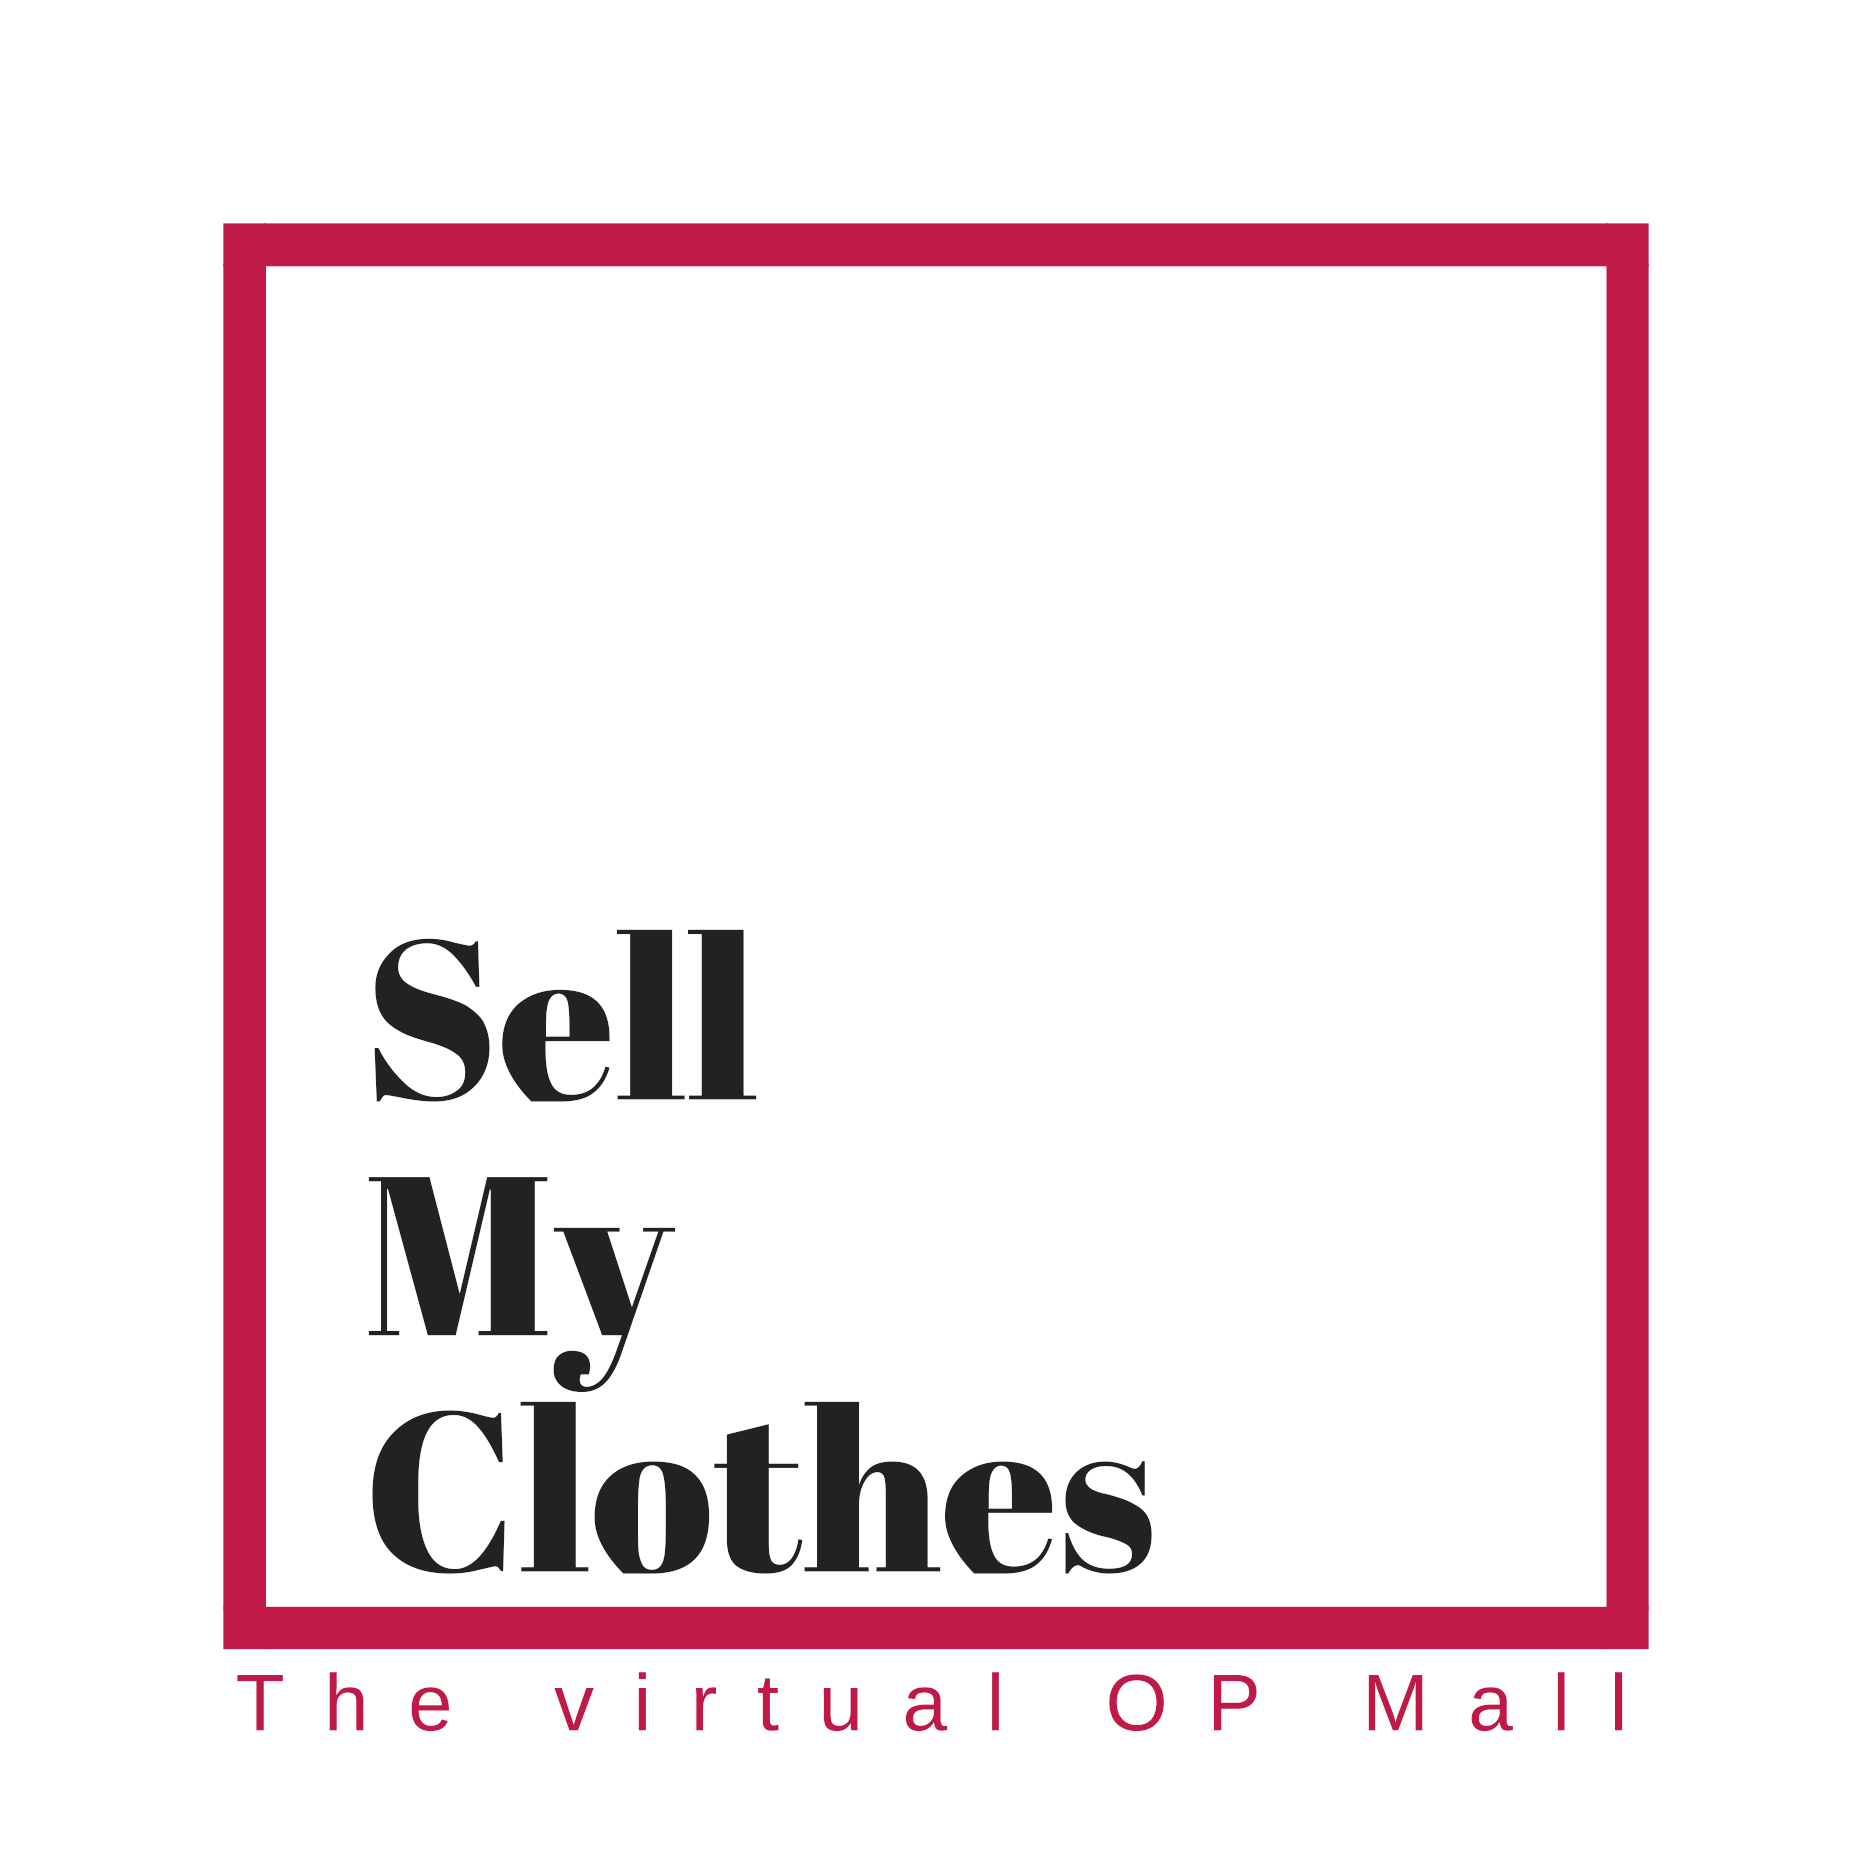 Sell my clothes logo.png